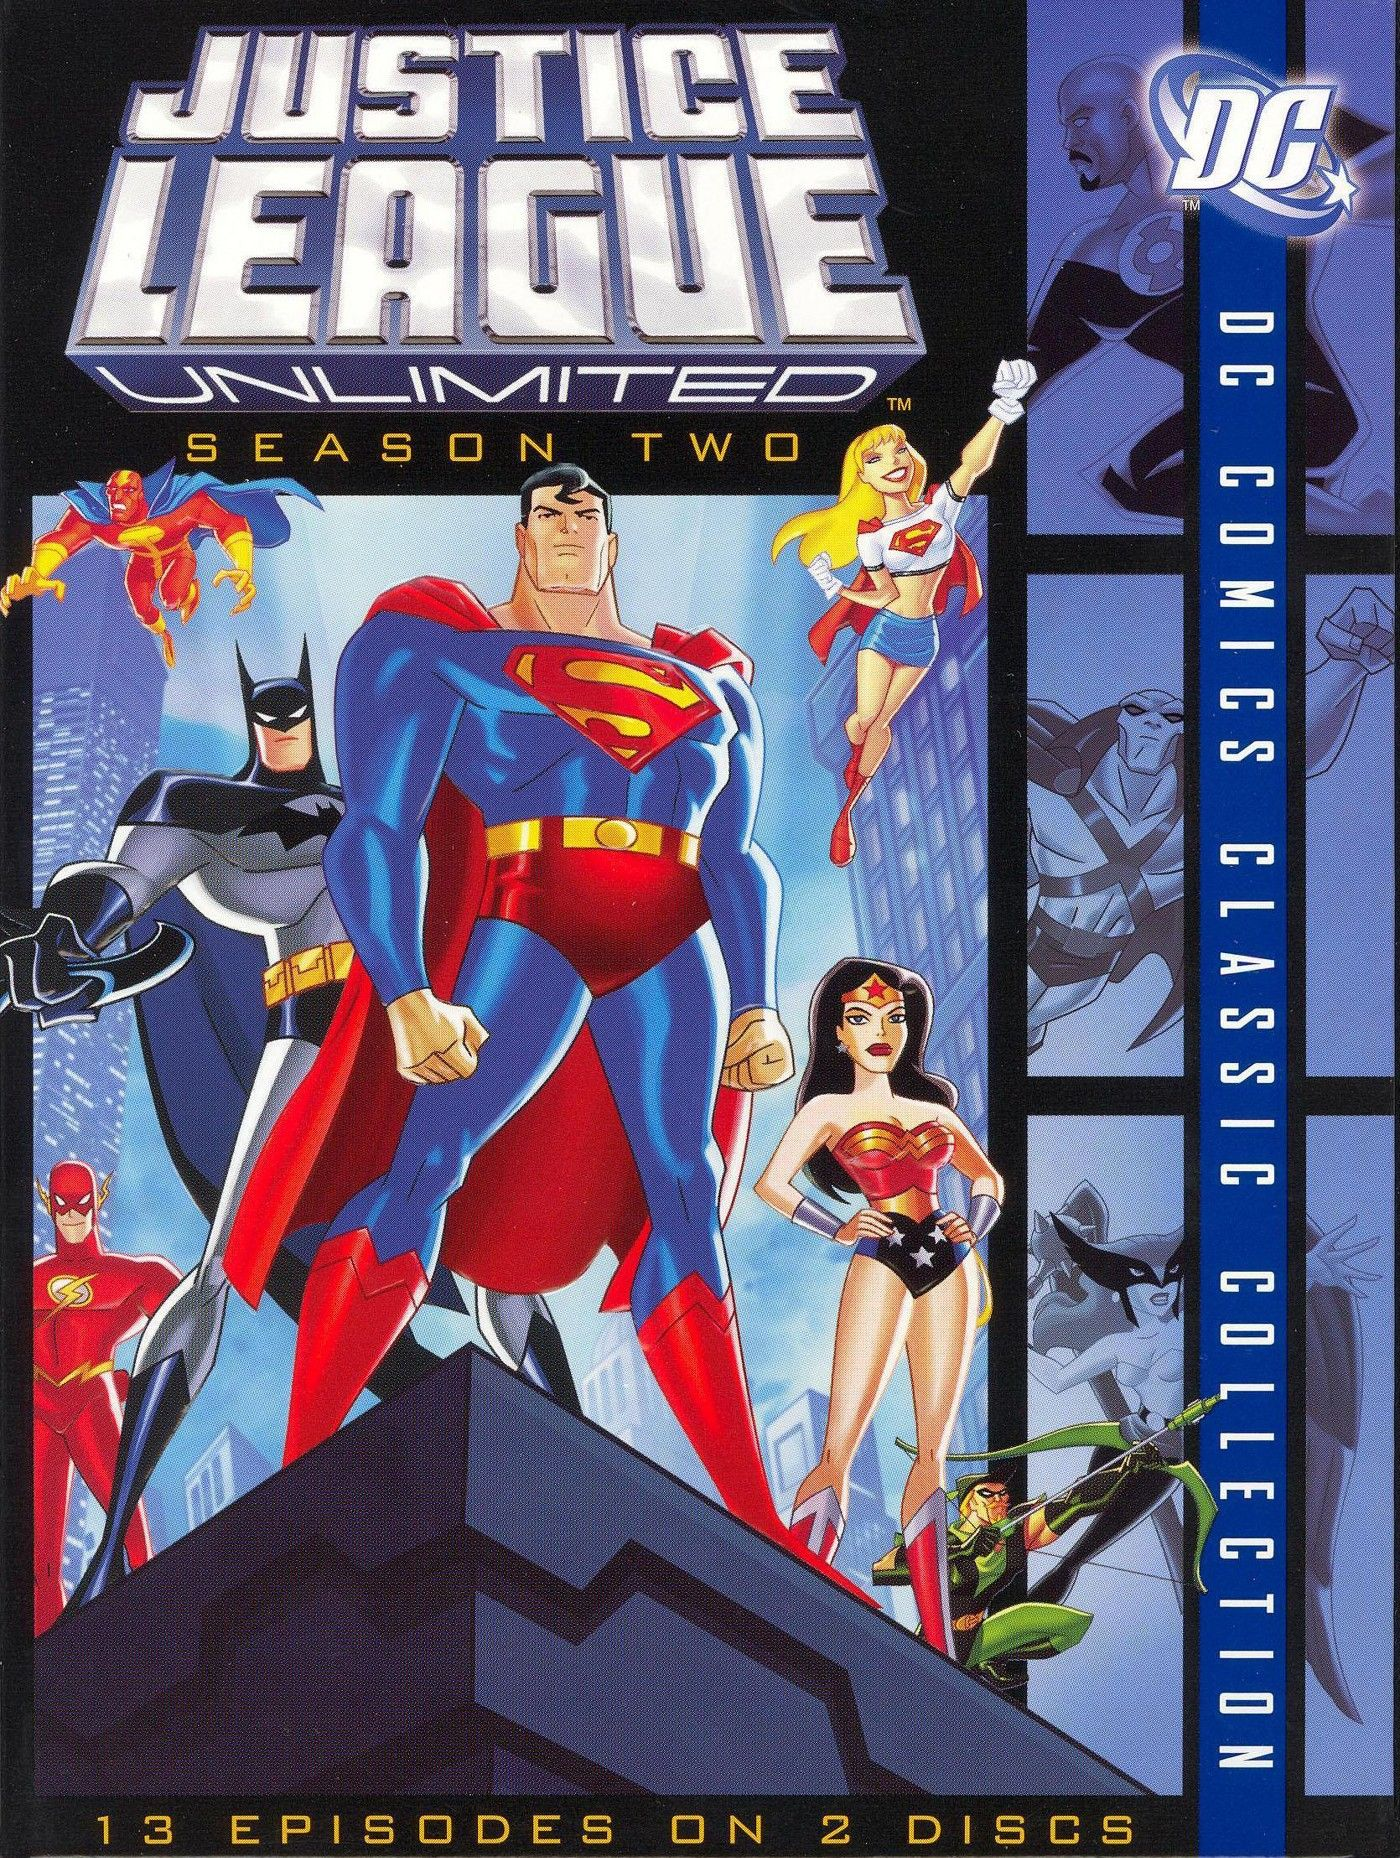 Justice League Unlimited Season Two Dvd In 2021 Justice League Unlimited Justice League New Superheroes